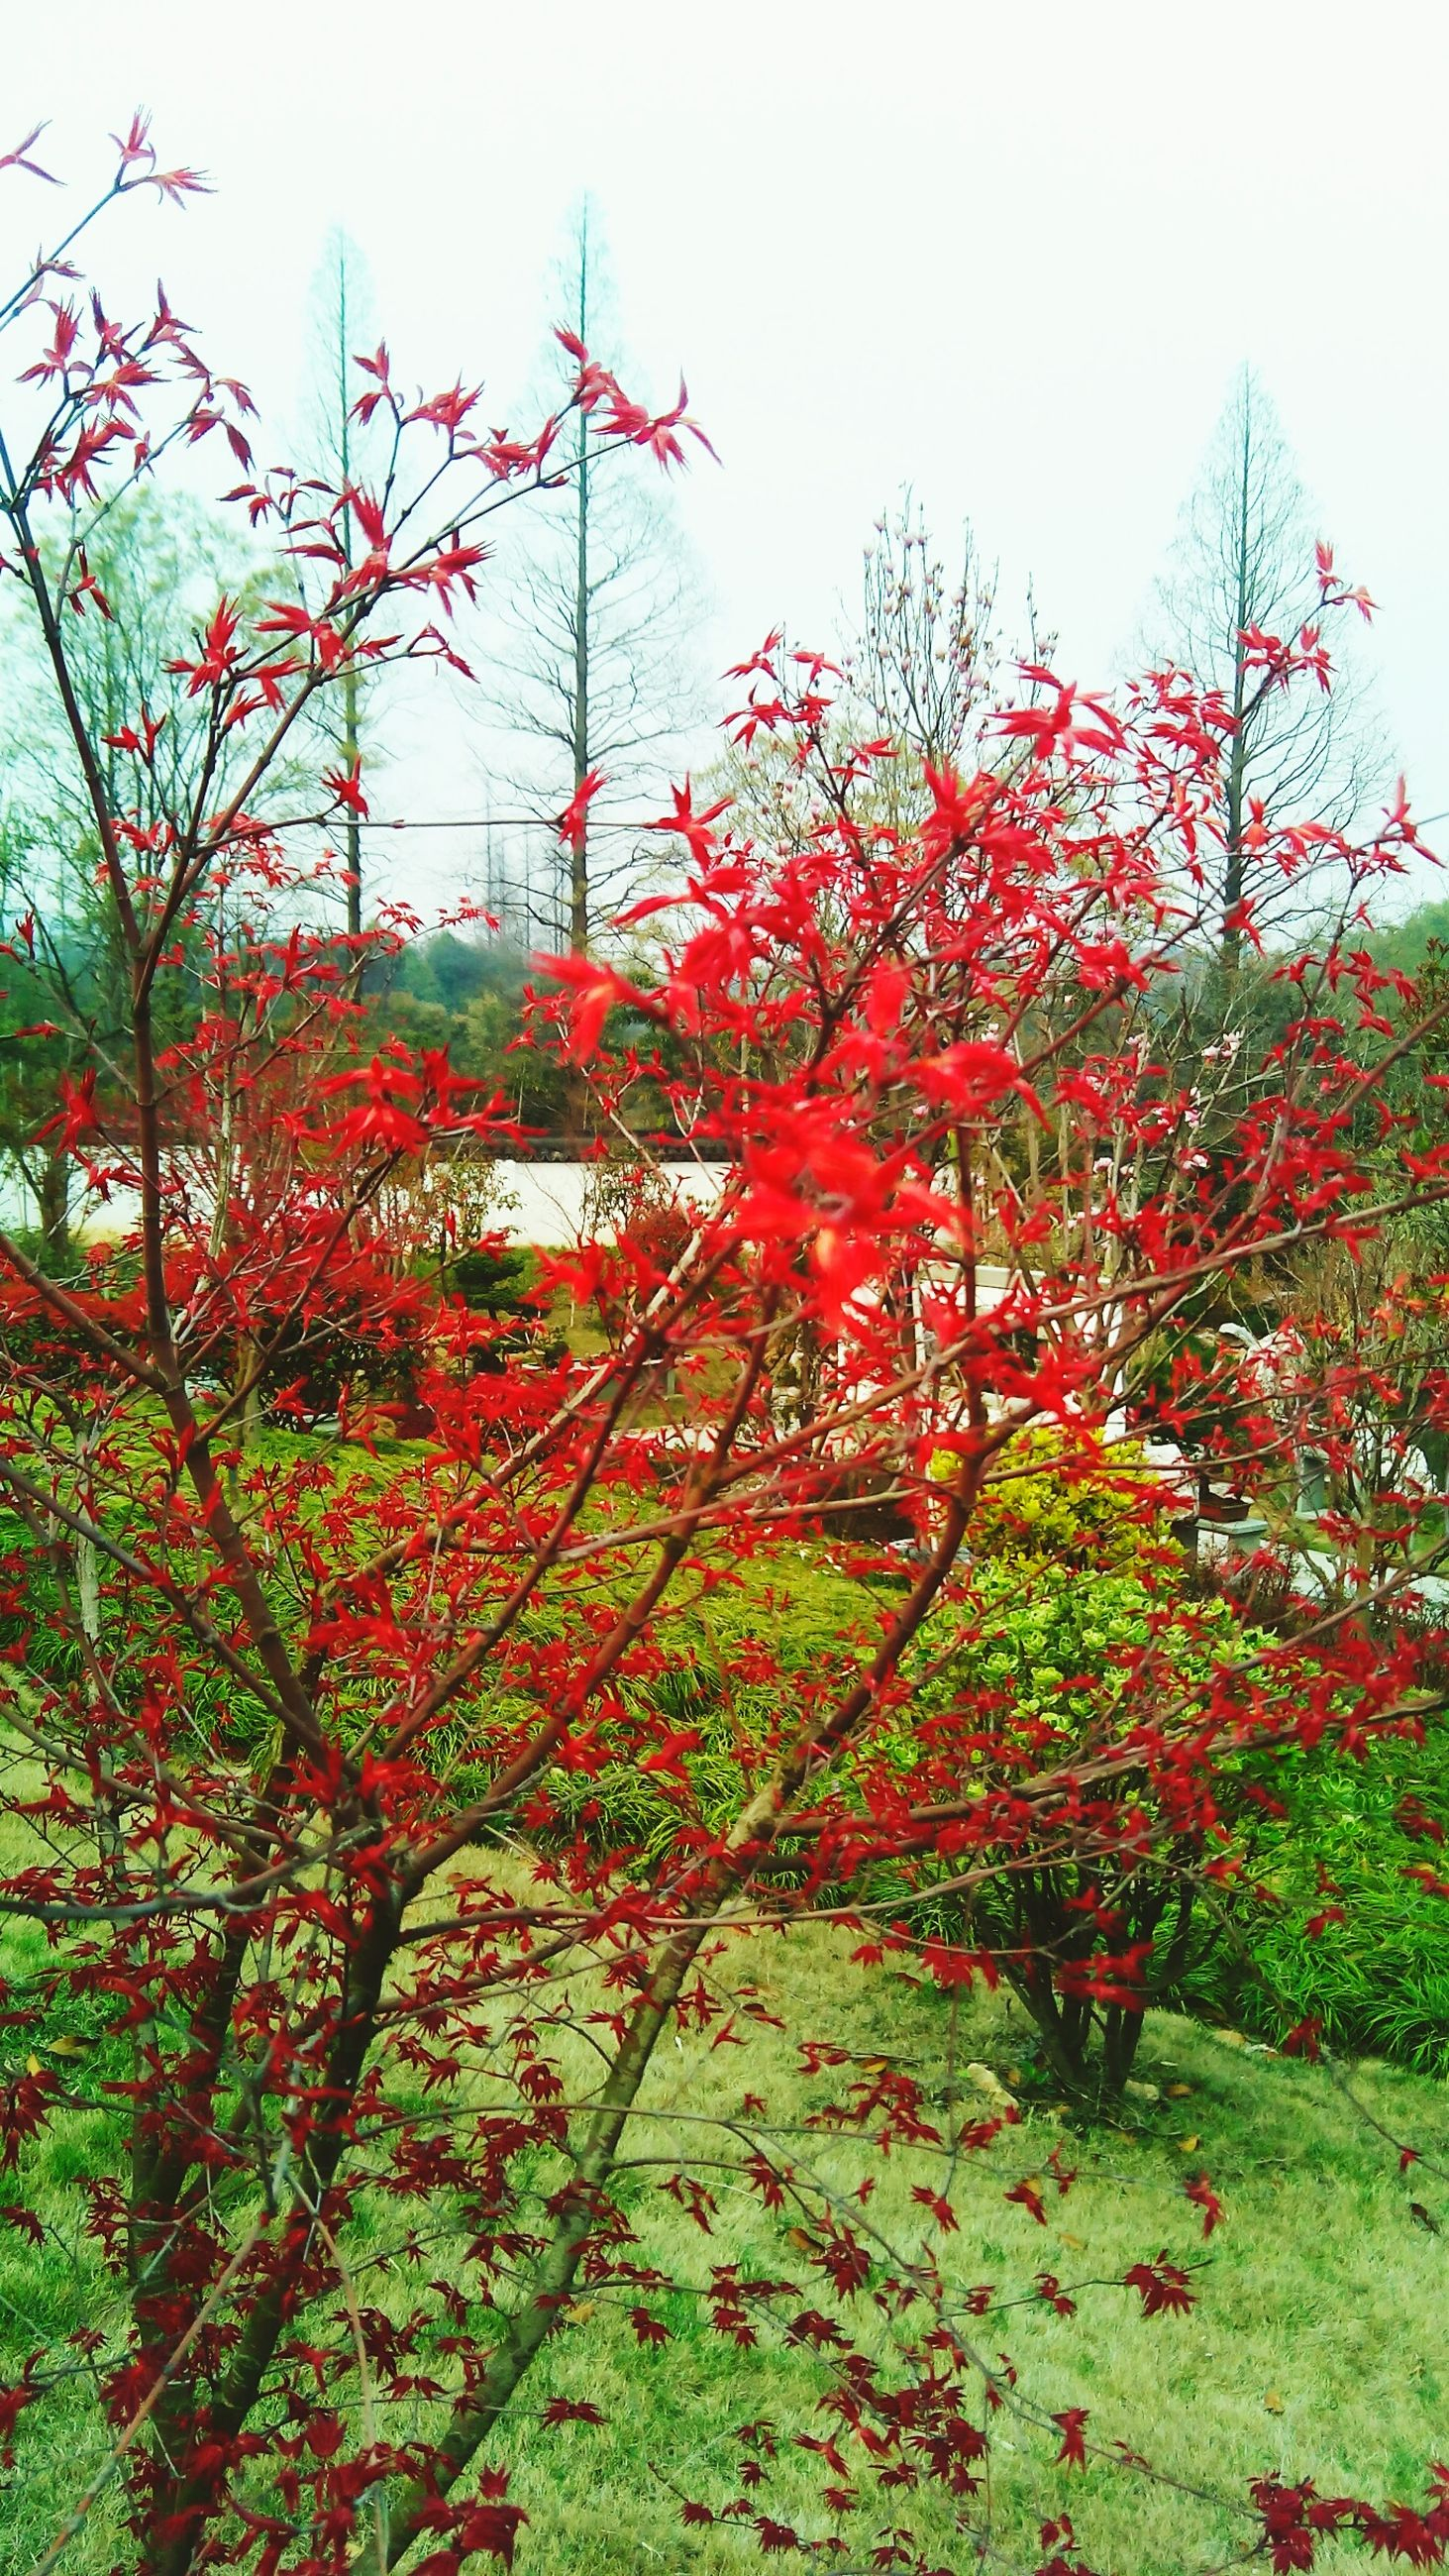 tree, flower, growth, clear sky, nature, freshness, branch, beauty in nature, sky, red, park - man made space, tranquility, plant, day, autumn, pink color, fragility, outdoors, blossom, leaf